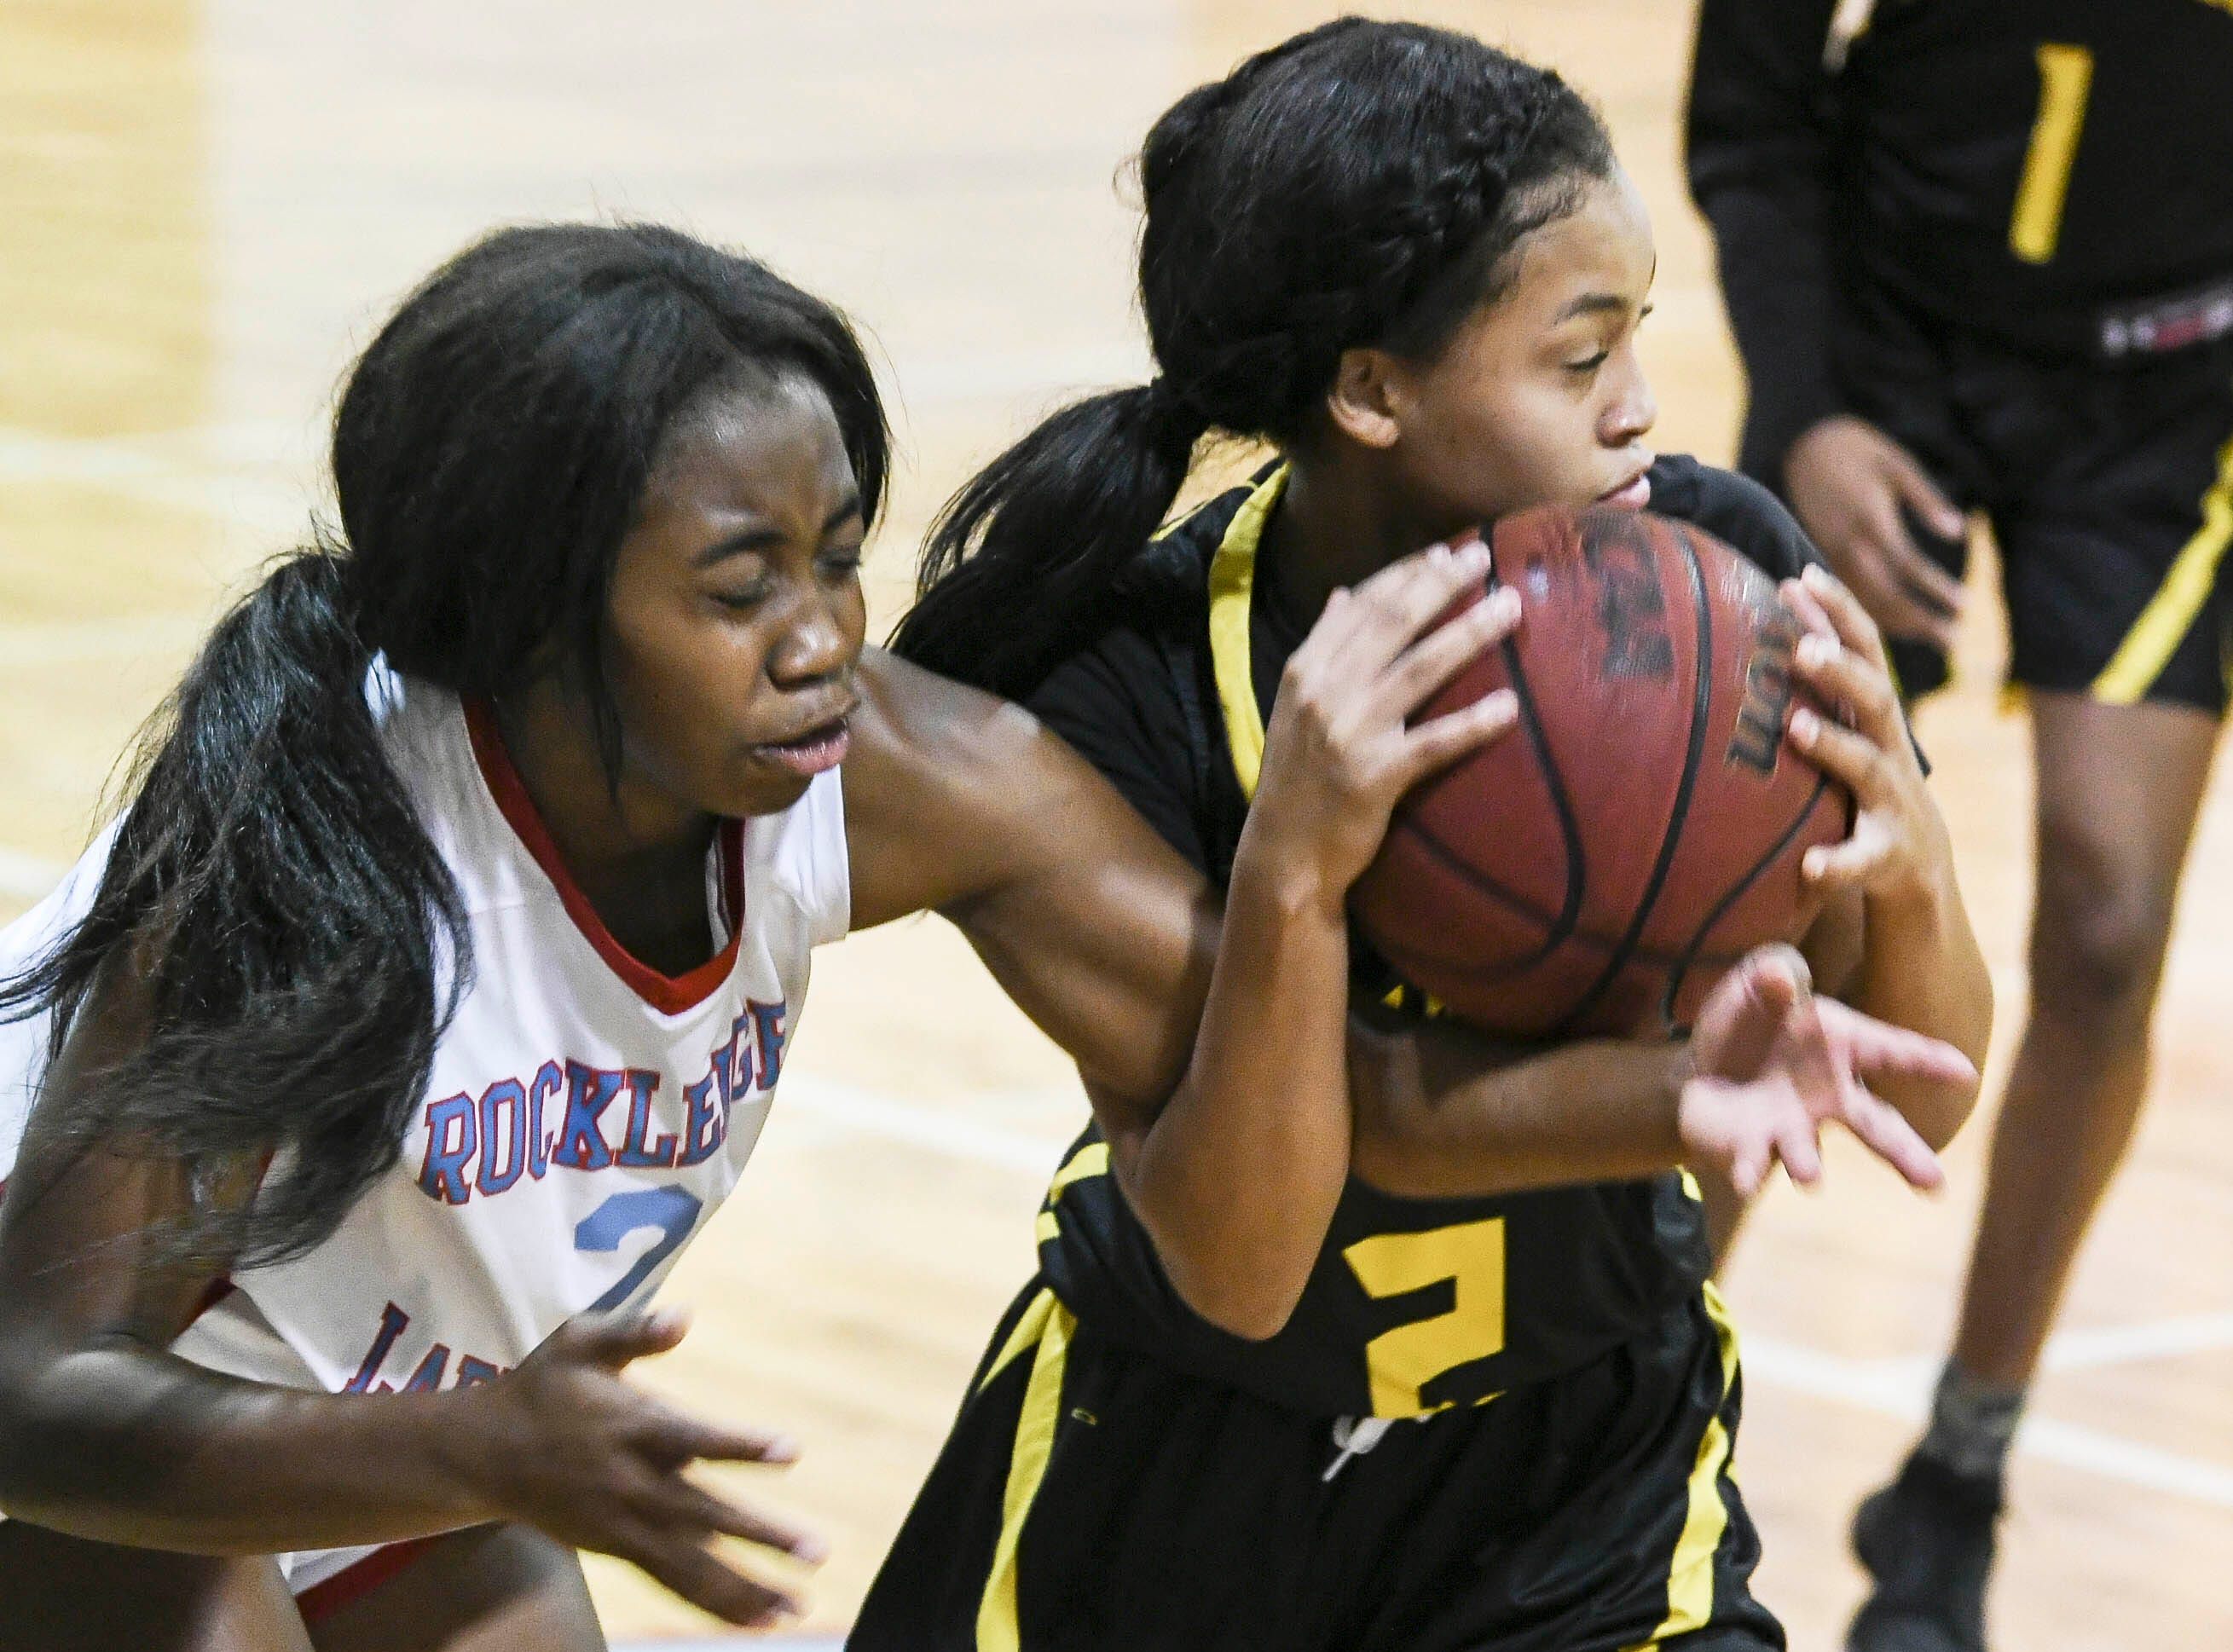 Jyda Christian of Rockledge and Shakira Fernandez of Merritt Island fight for possession of  the ball during Thursday's District 14-6A basketball tournament at Rockledge High School.